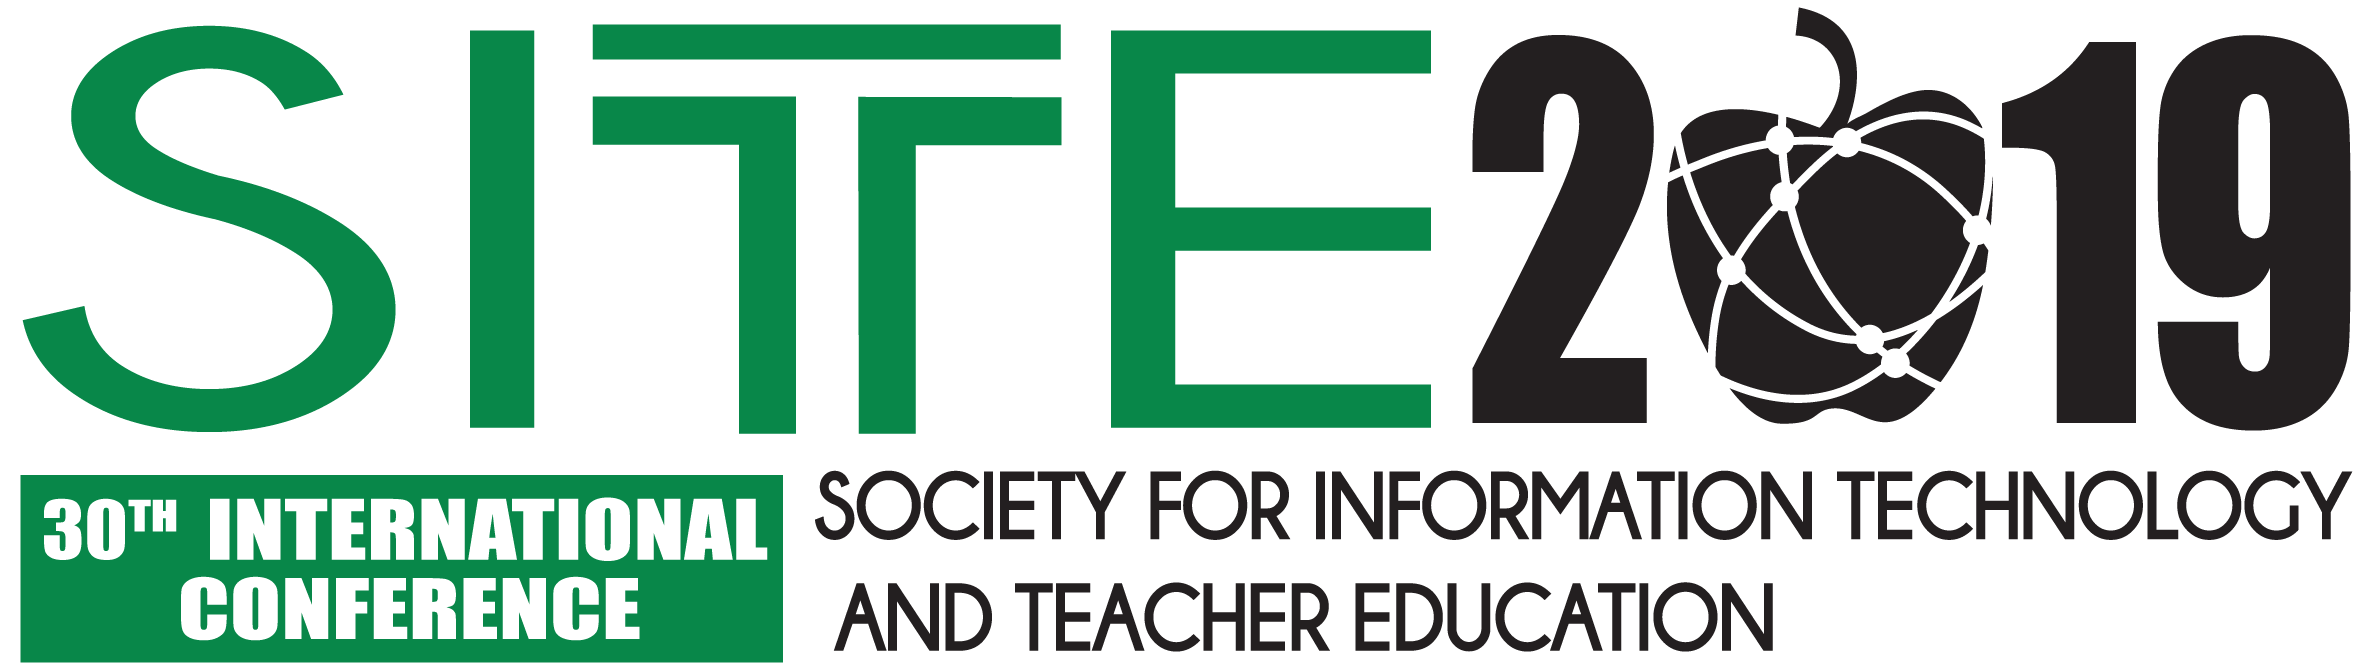 Society for Information Technology & Teacher Education ...